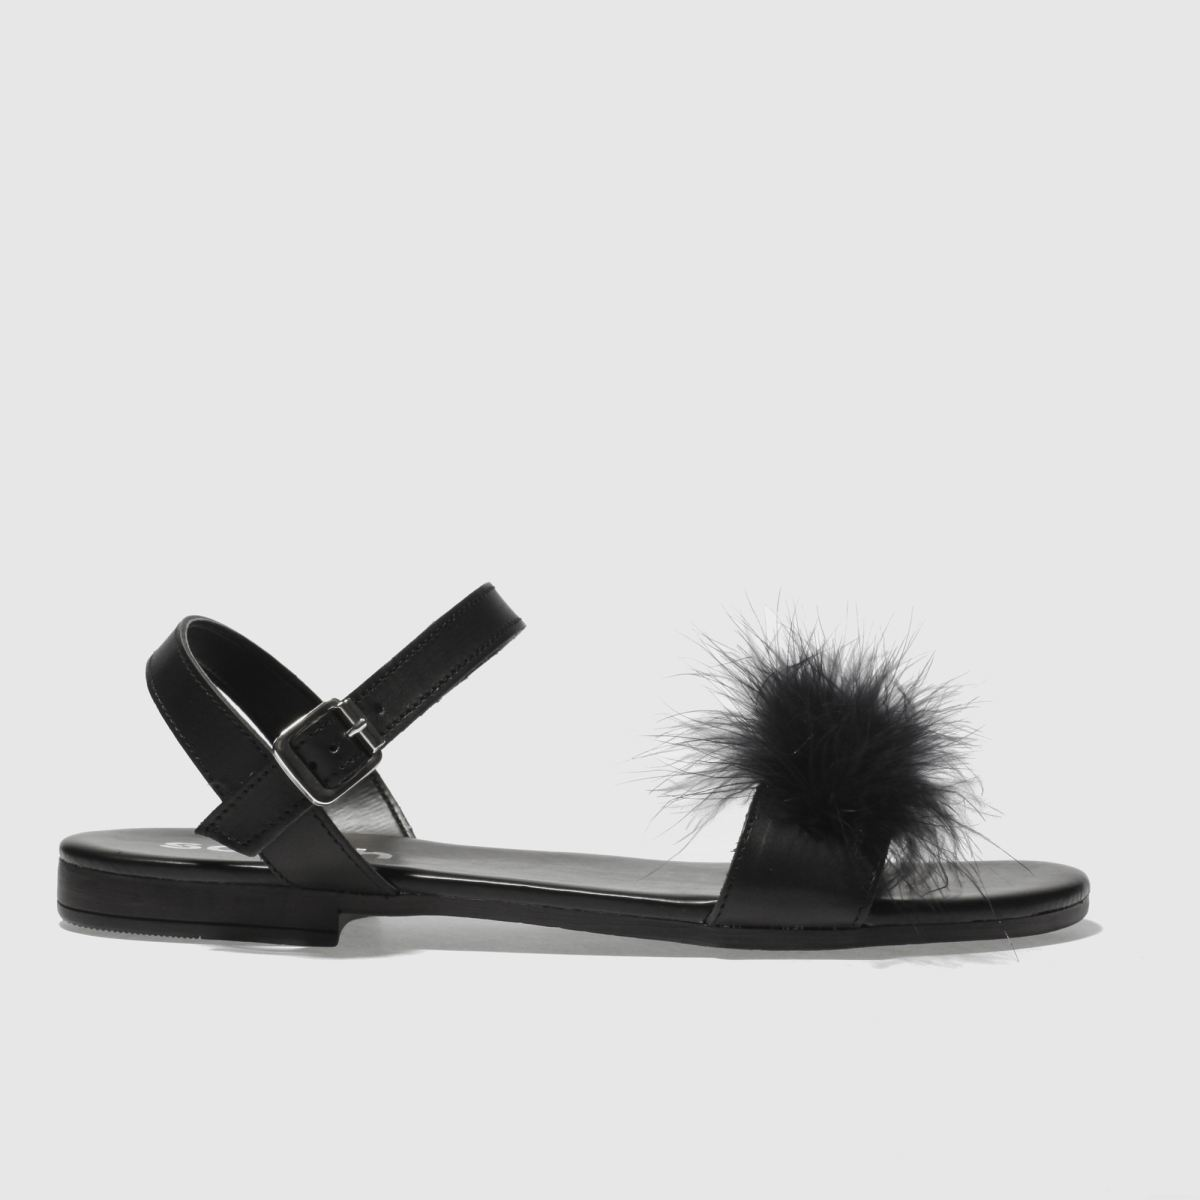 Schuh Black Antigua Sandals